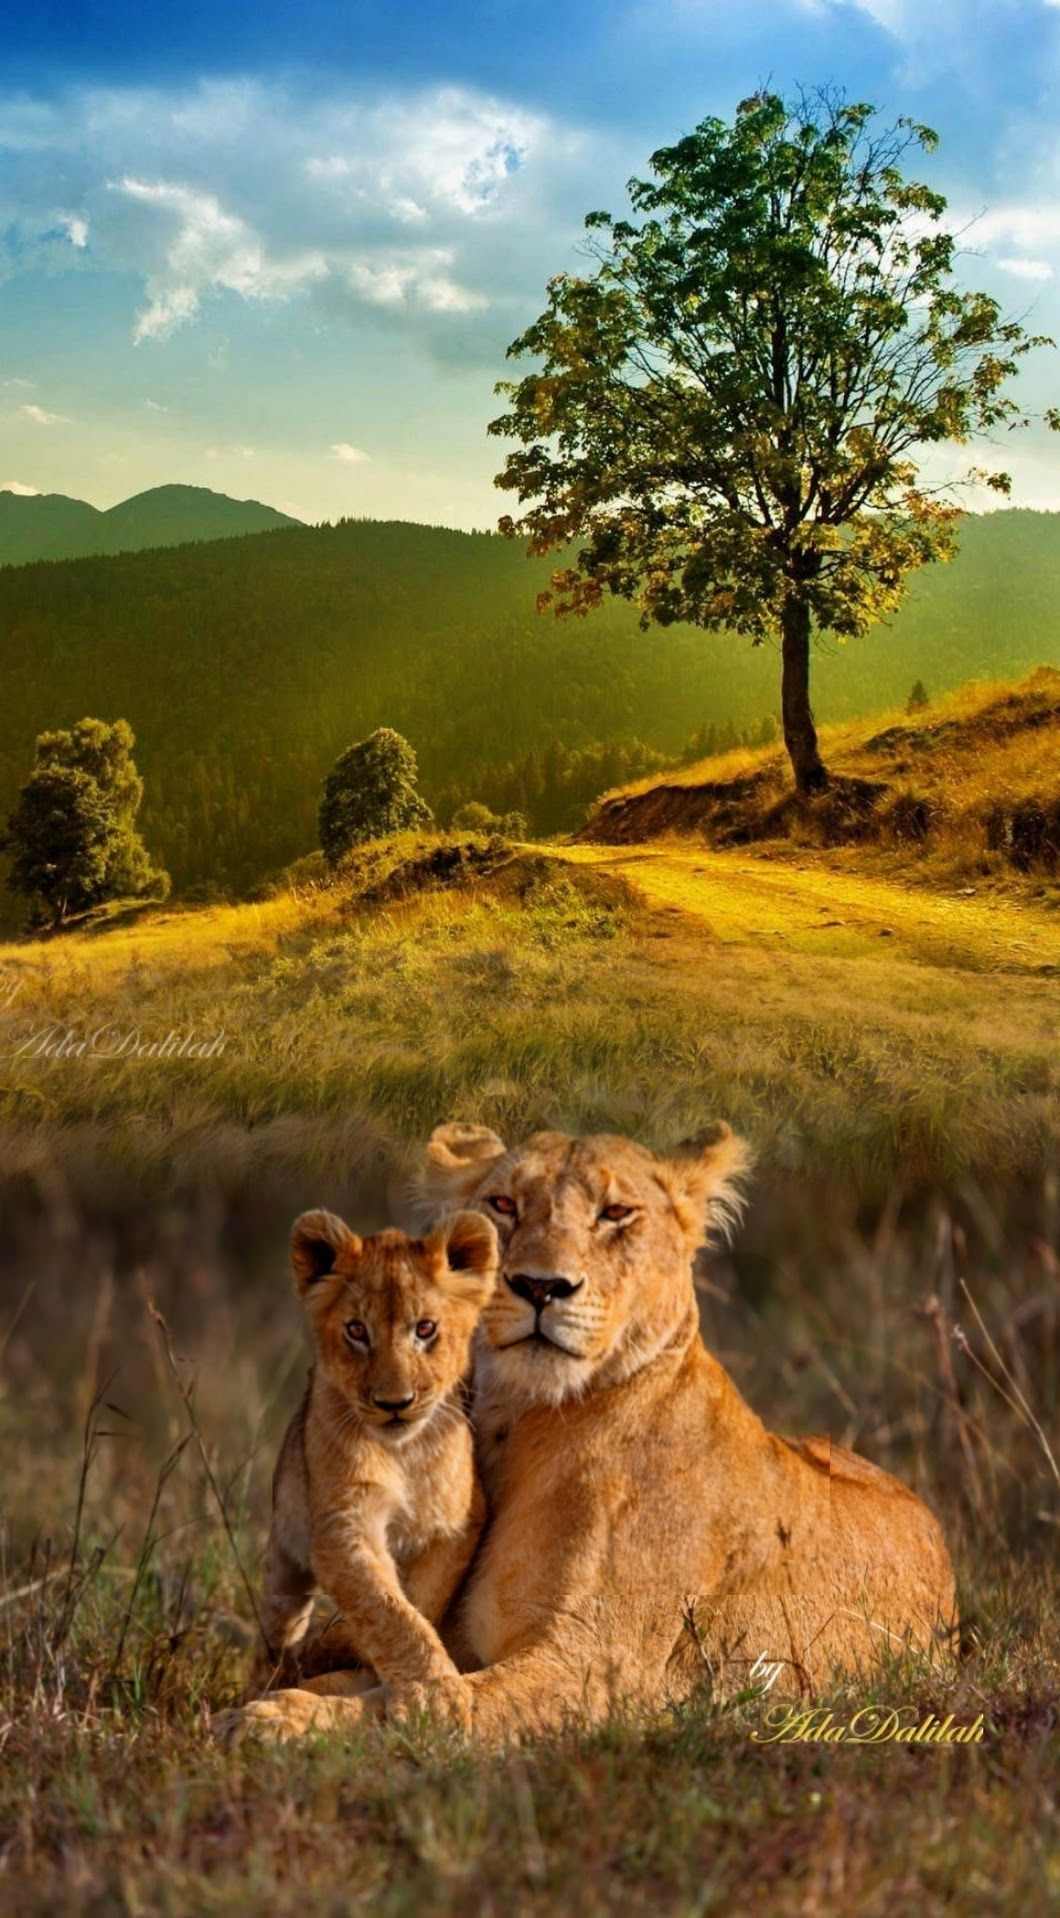 Pin By Pearl Aranda On Cute And Adorable Animals Animals Wild Beautiful Cats Nature Animals